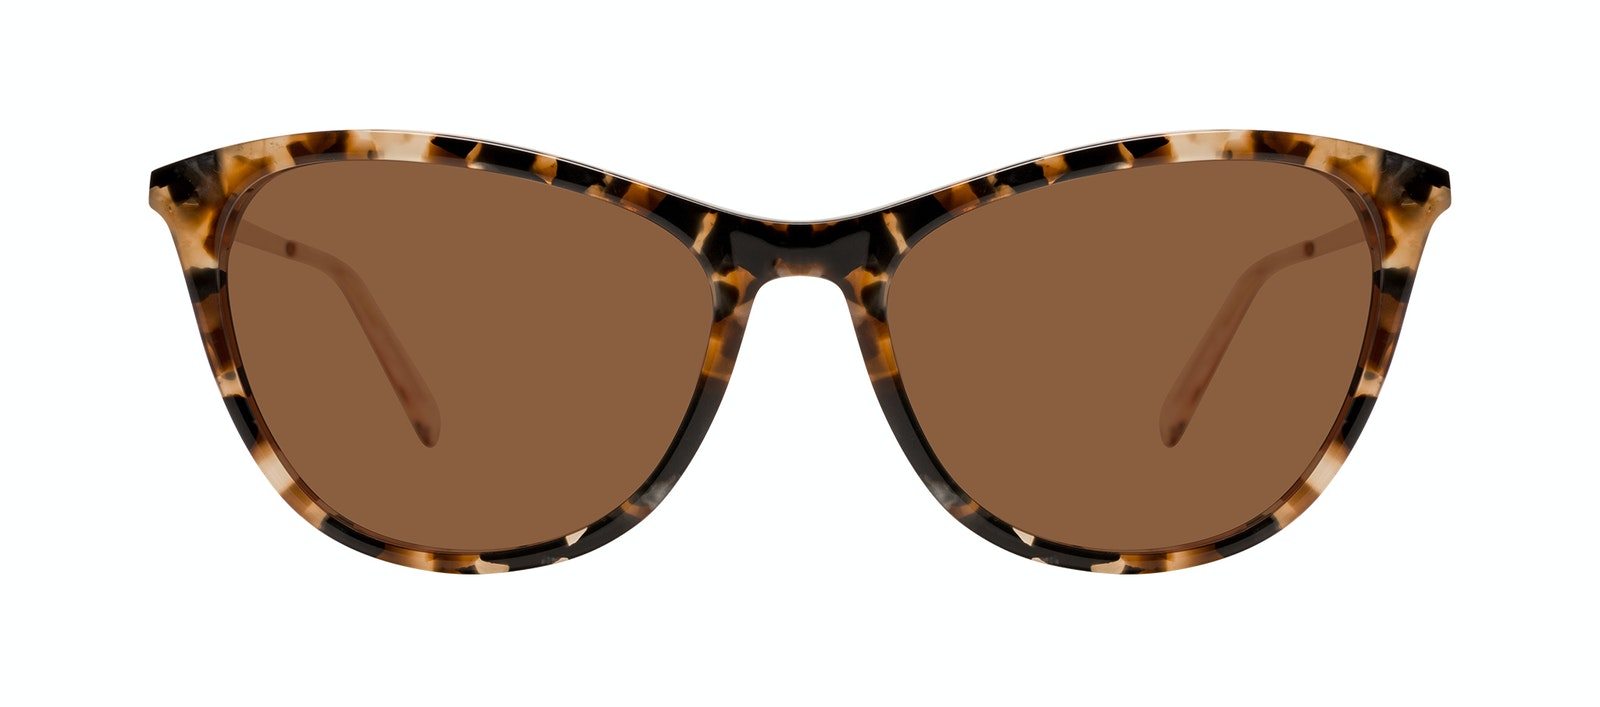 Affordable Fashion Glasses Rectangle Sunglasses Women Folk Plus Gold Flake Front